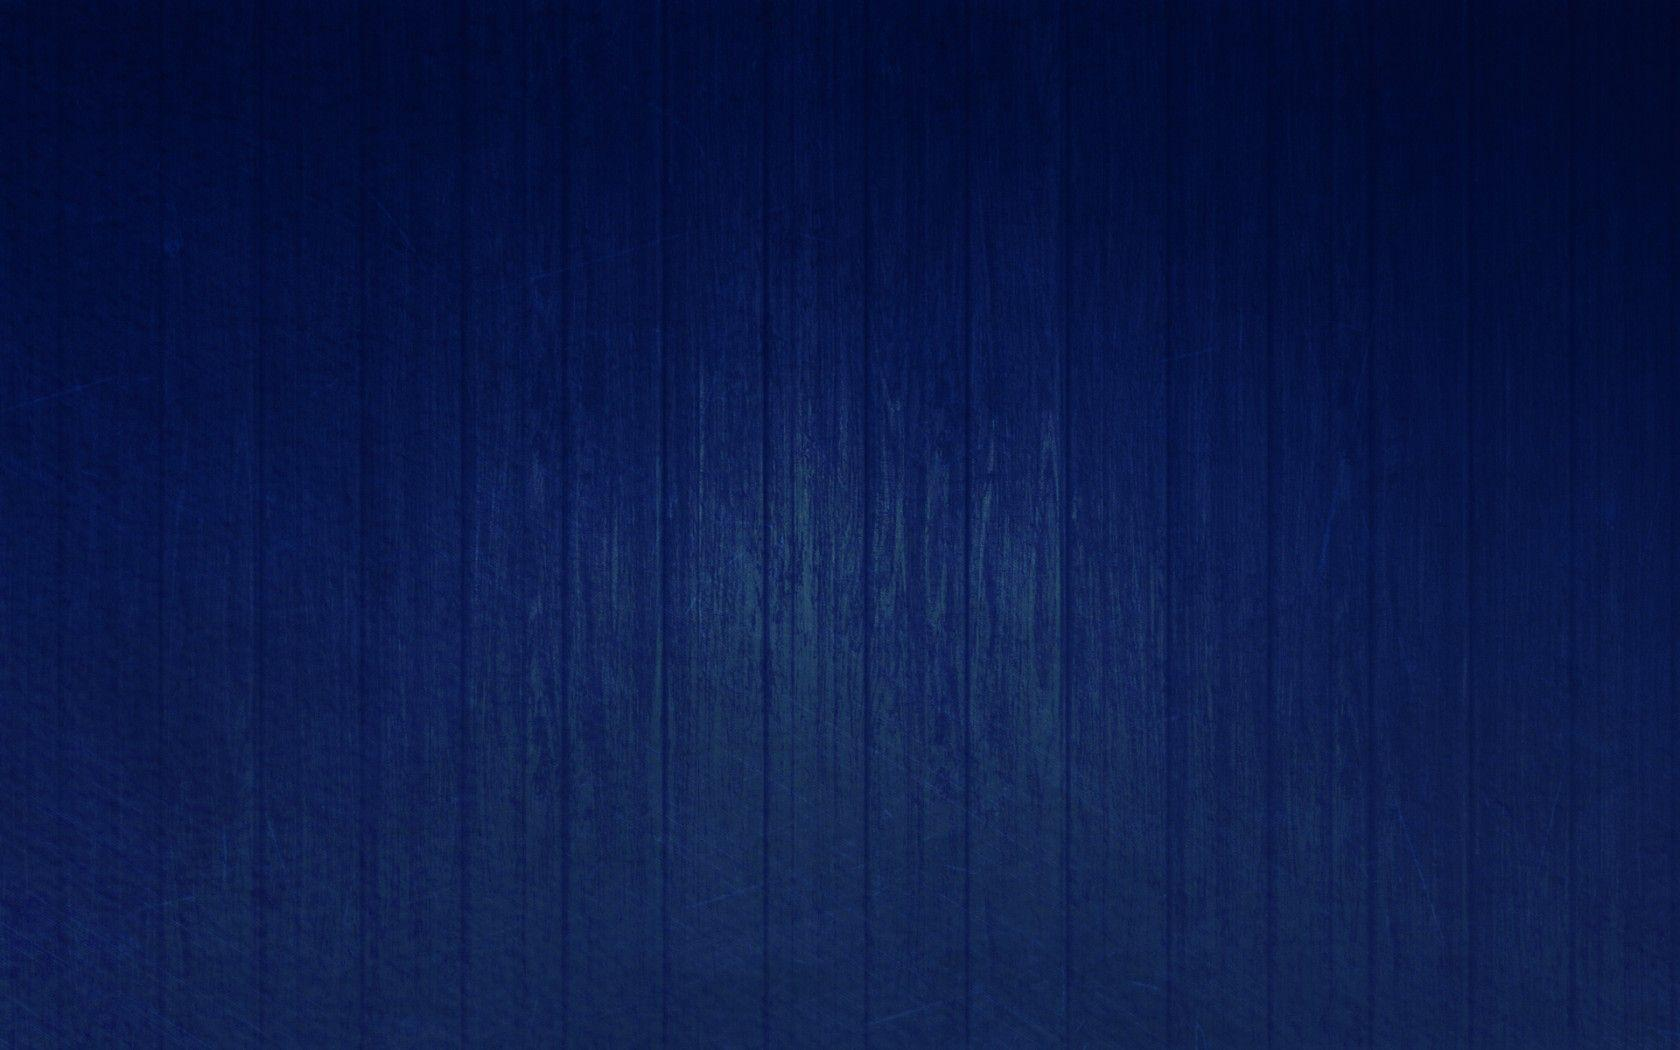 Cool blue wallpapers wallpaper cave for Fondo azul marino